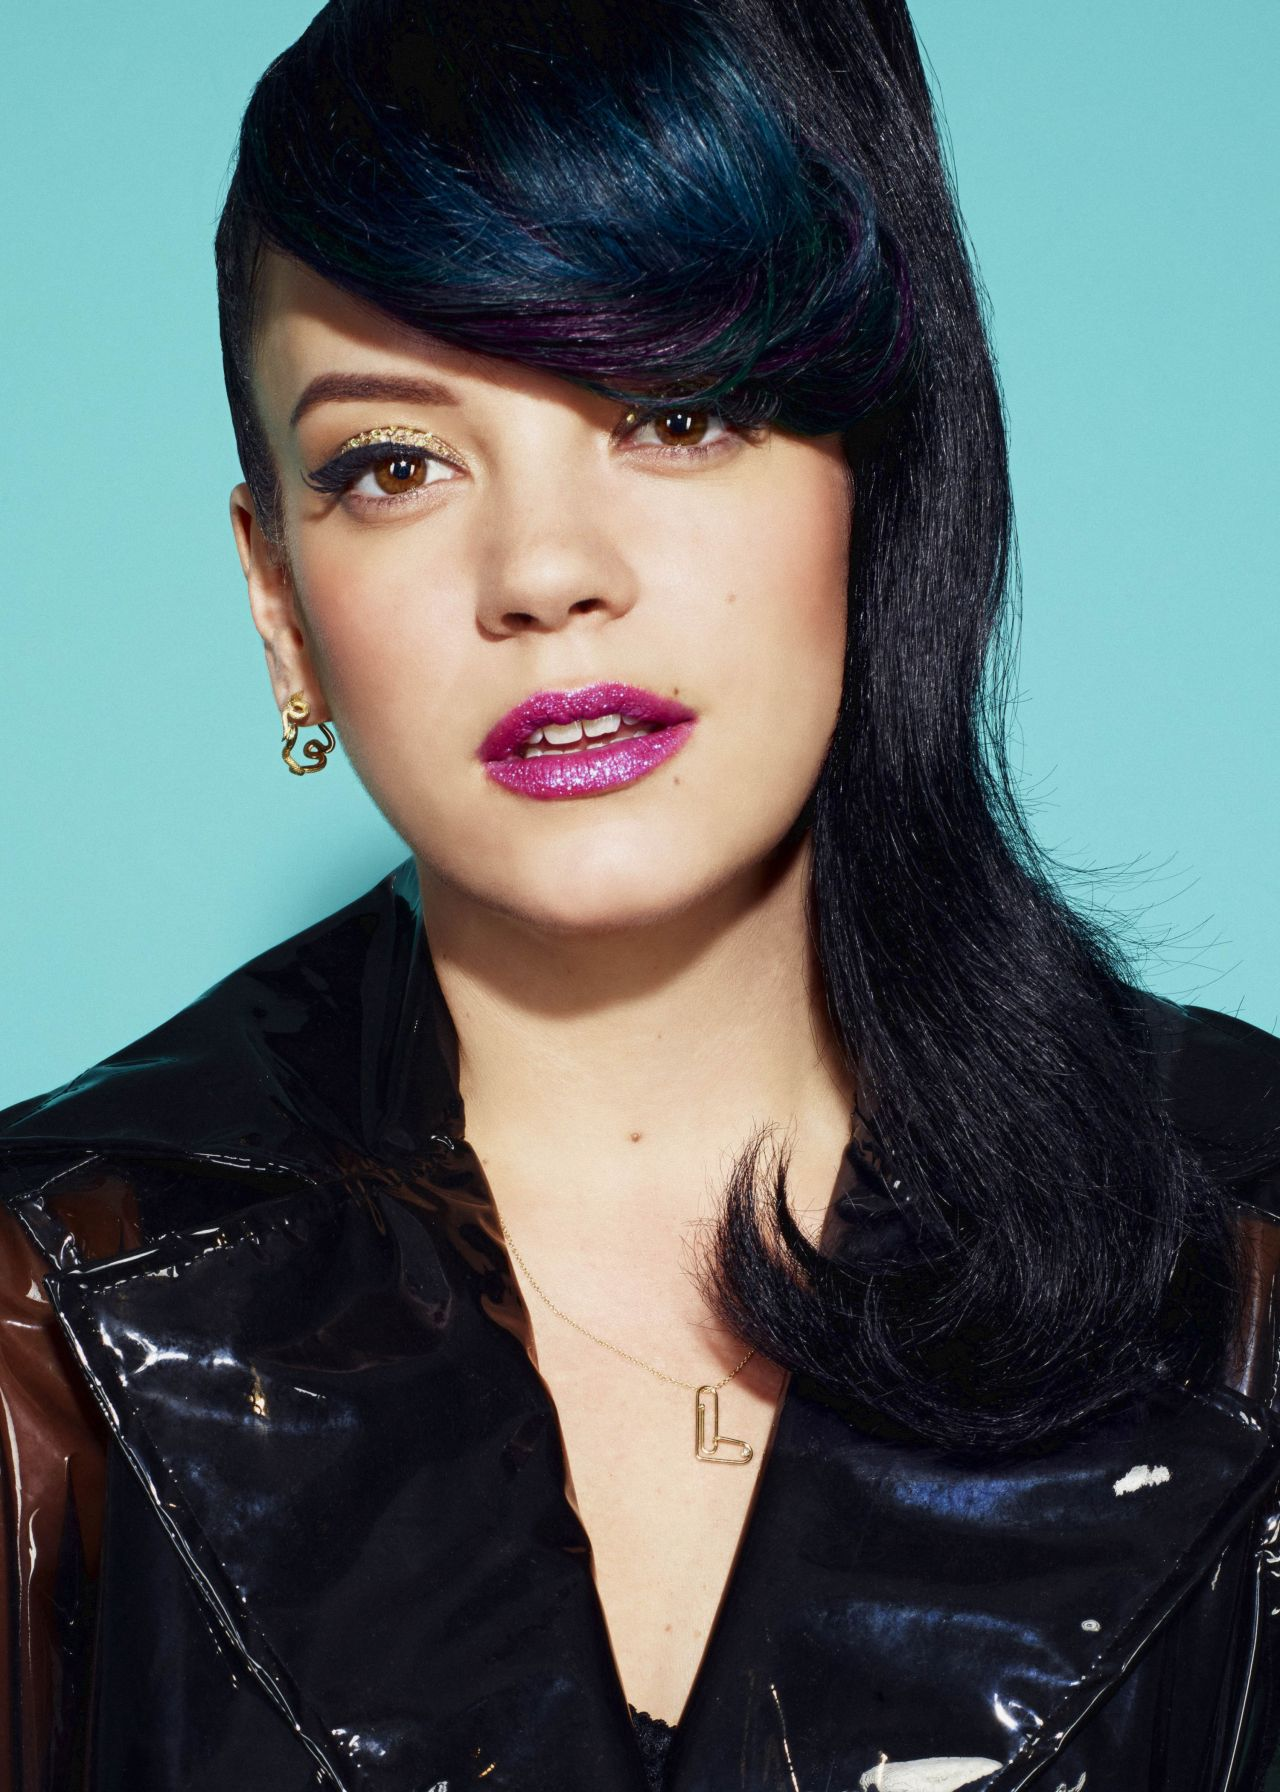 Lily Allen - Nme Photoshoot 2014-2697